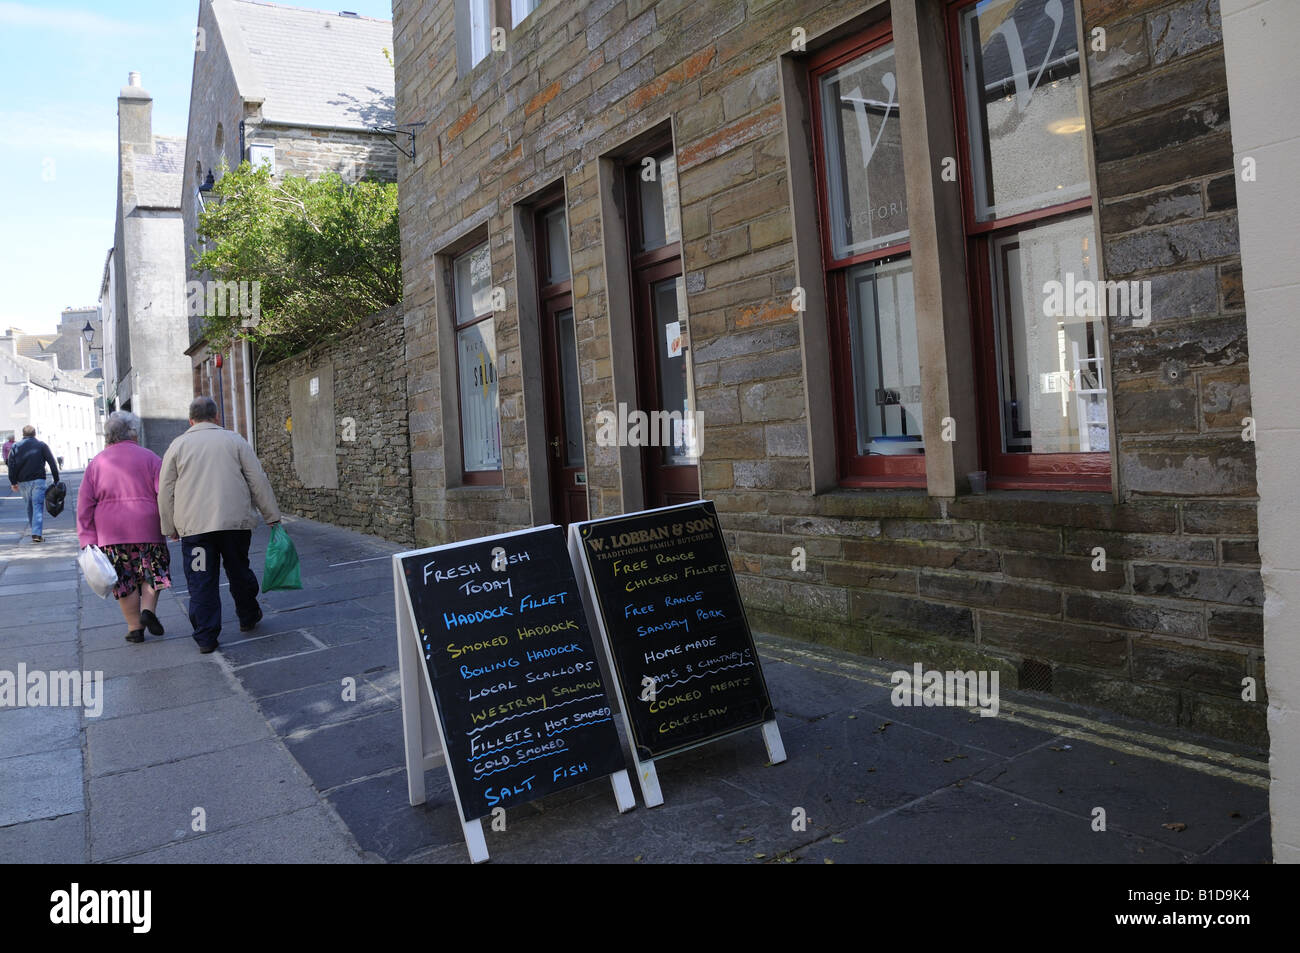 Victoria Street in Kirkwall, the capital of the Orkney Islands. - Stock Image